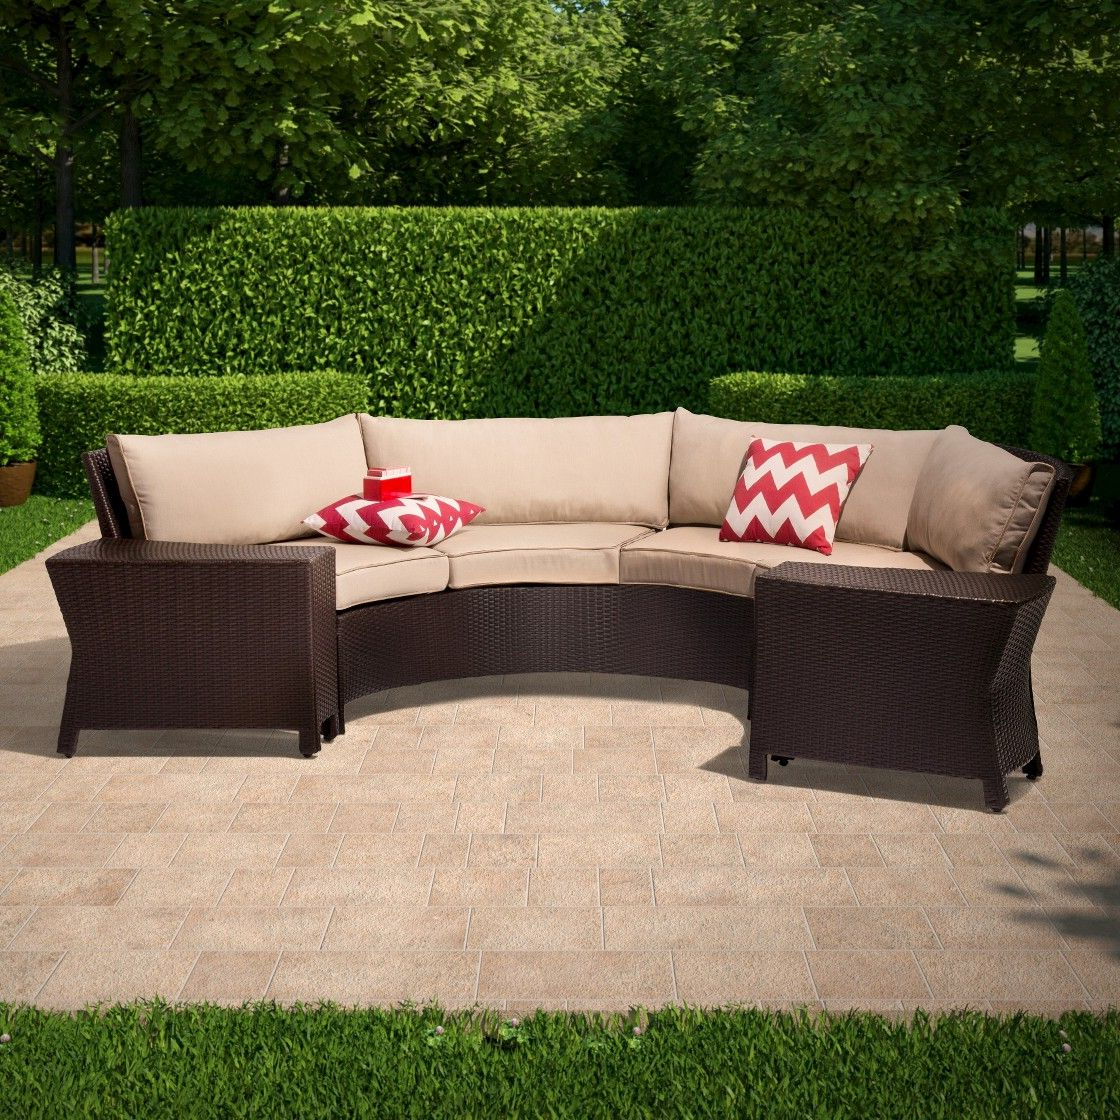 Stockwell Patio Sofas With Cushions Pertaining To Newest Threshold  Harrison 6 Piece Wicker Sectional Patio Seating (View 16 of 20)